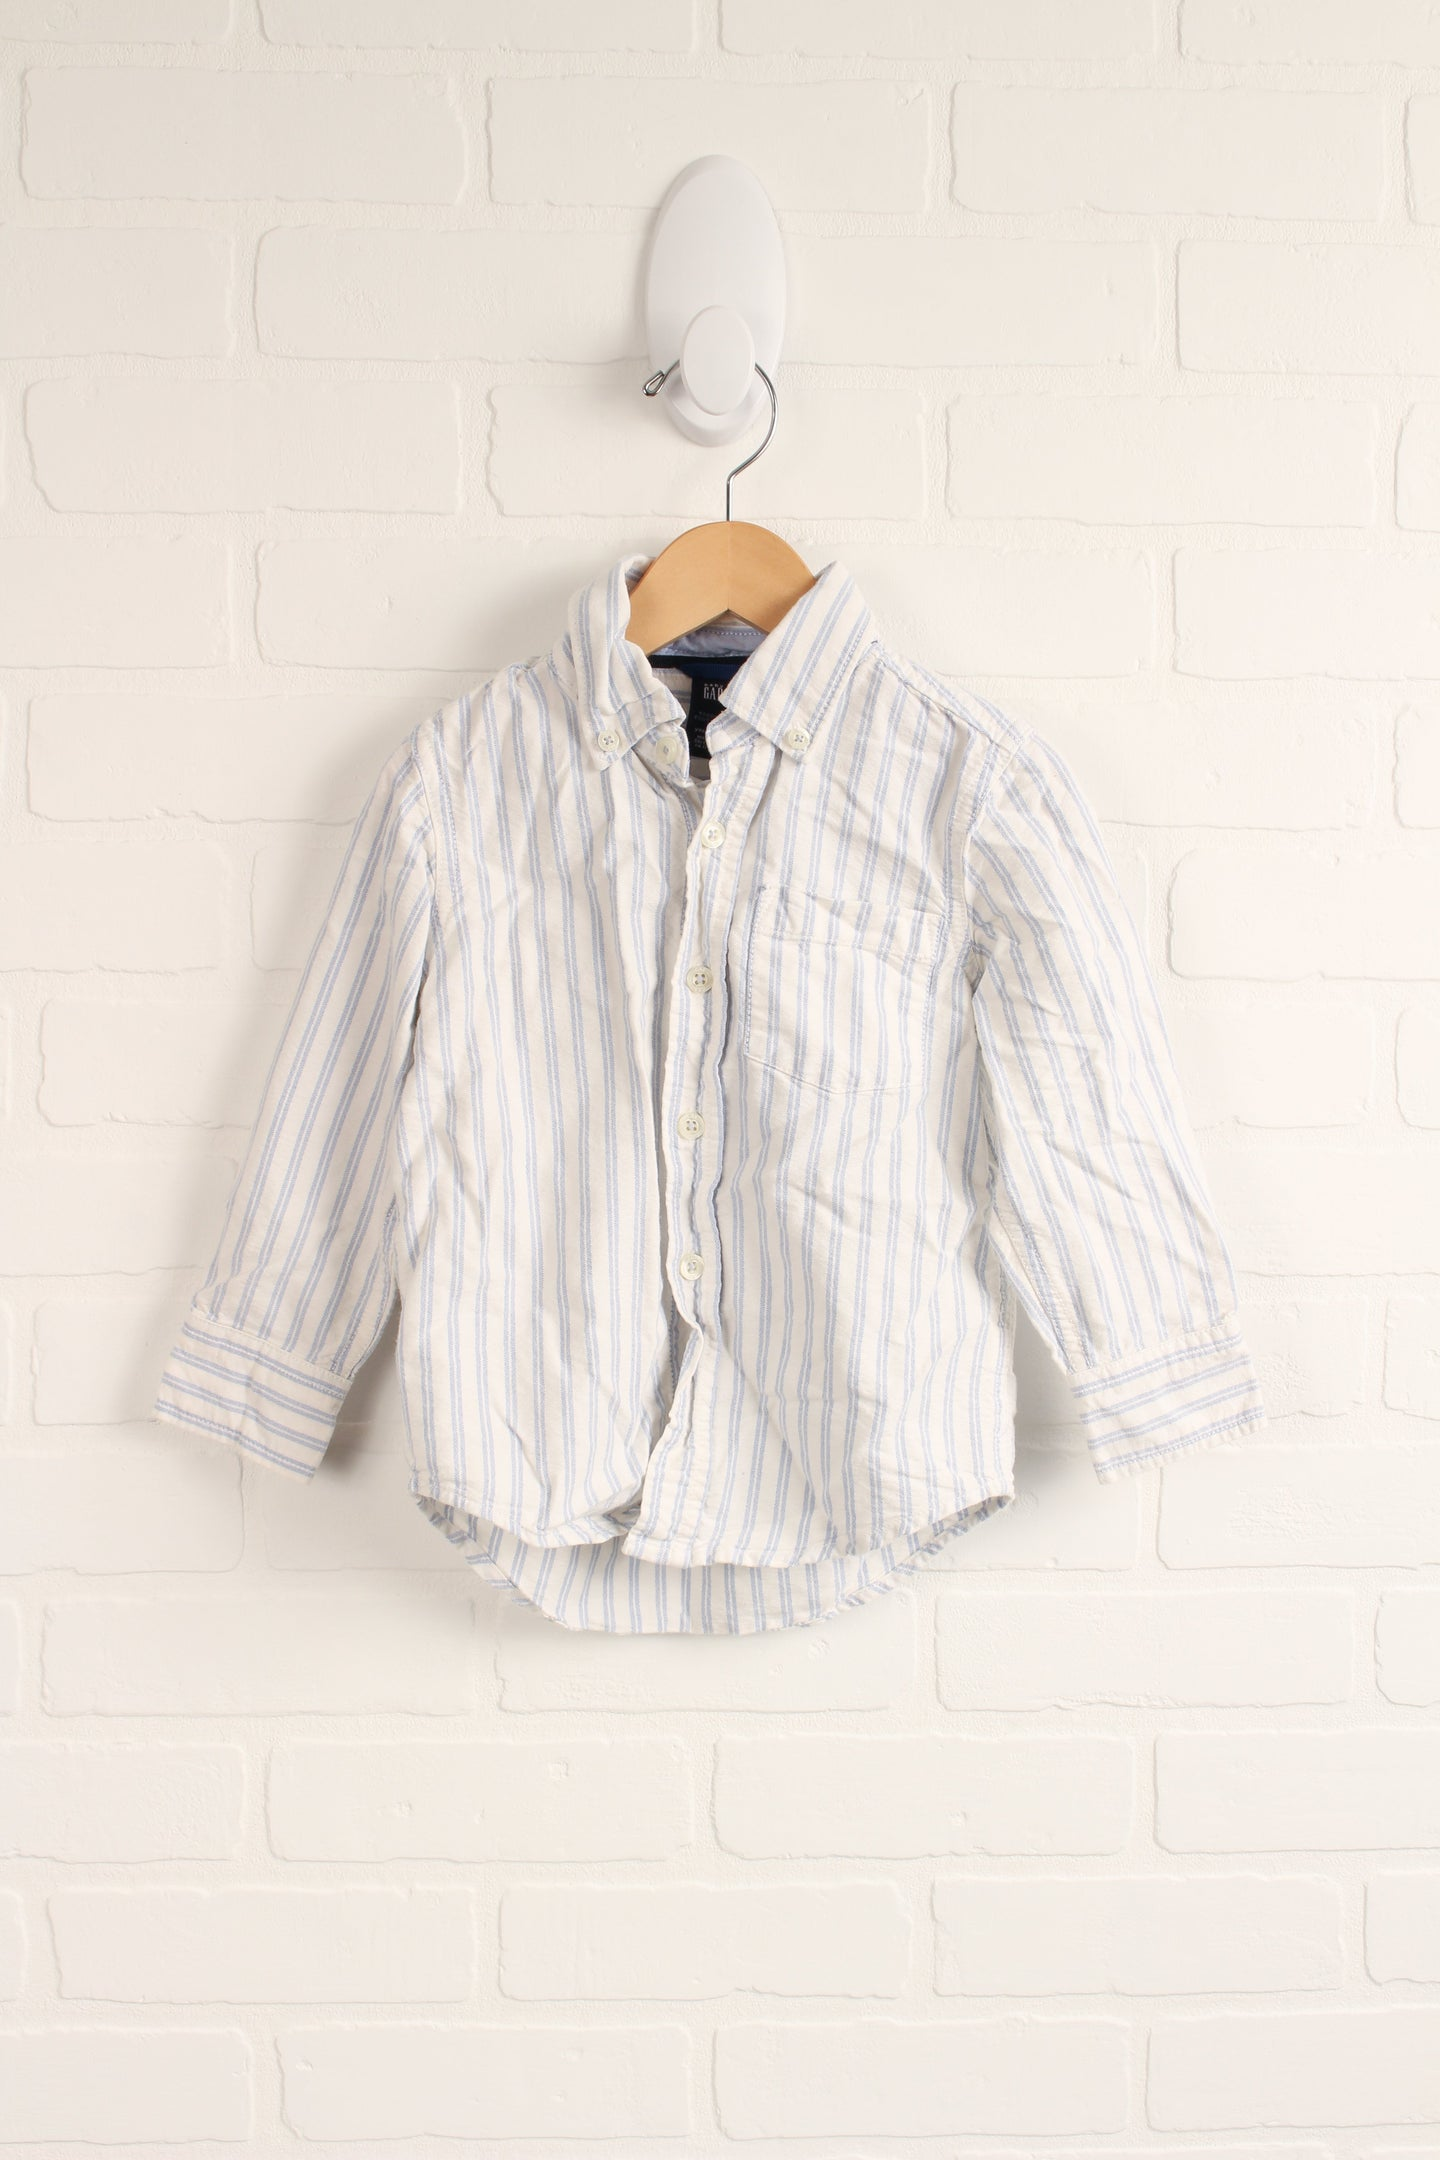 White + Blue Striped Button-Down (Size 4)